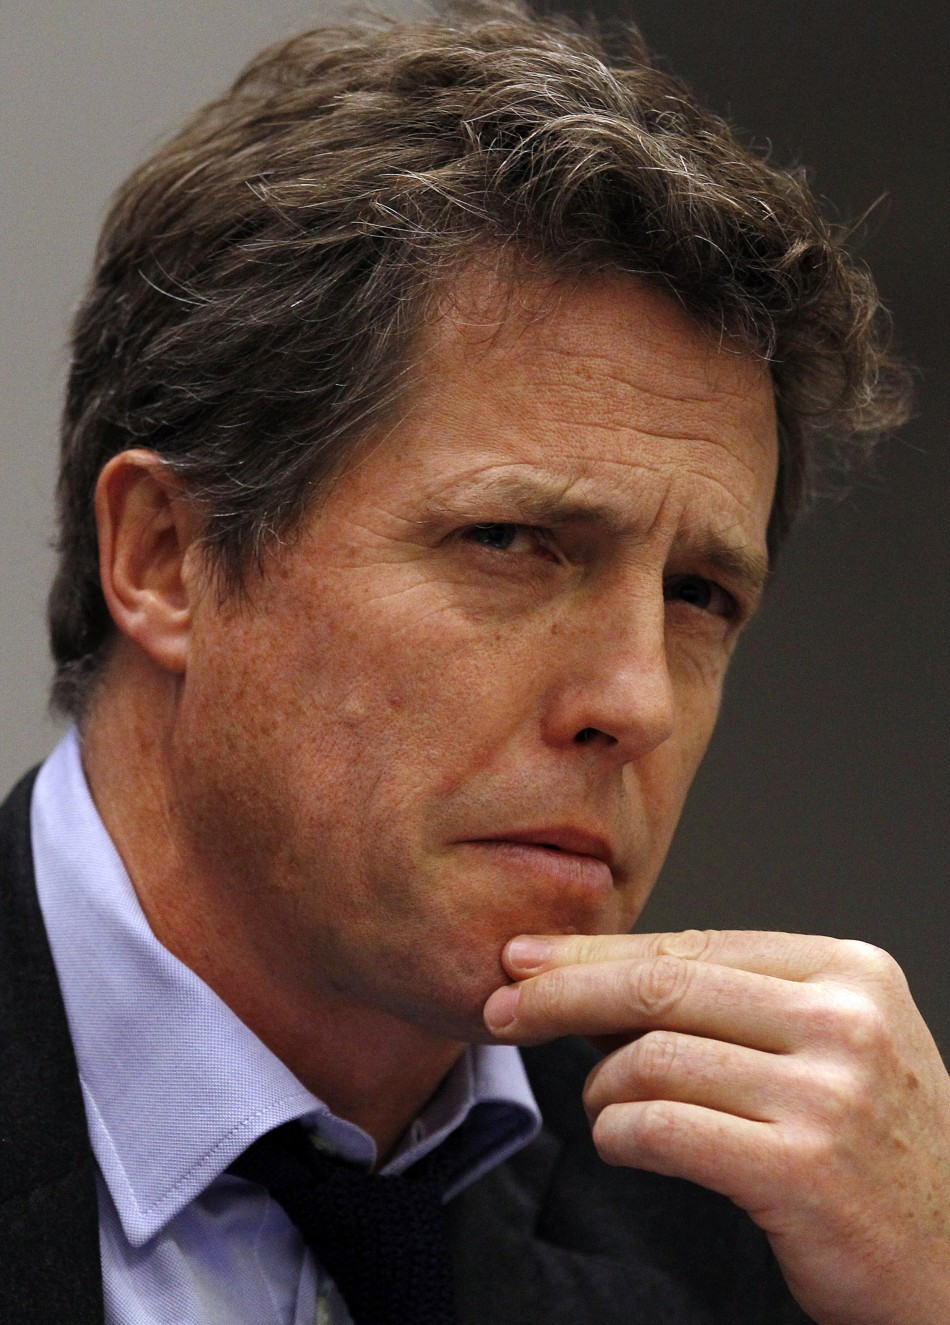 British Actor Hugh Grant Becomes Father After Mystery Affair